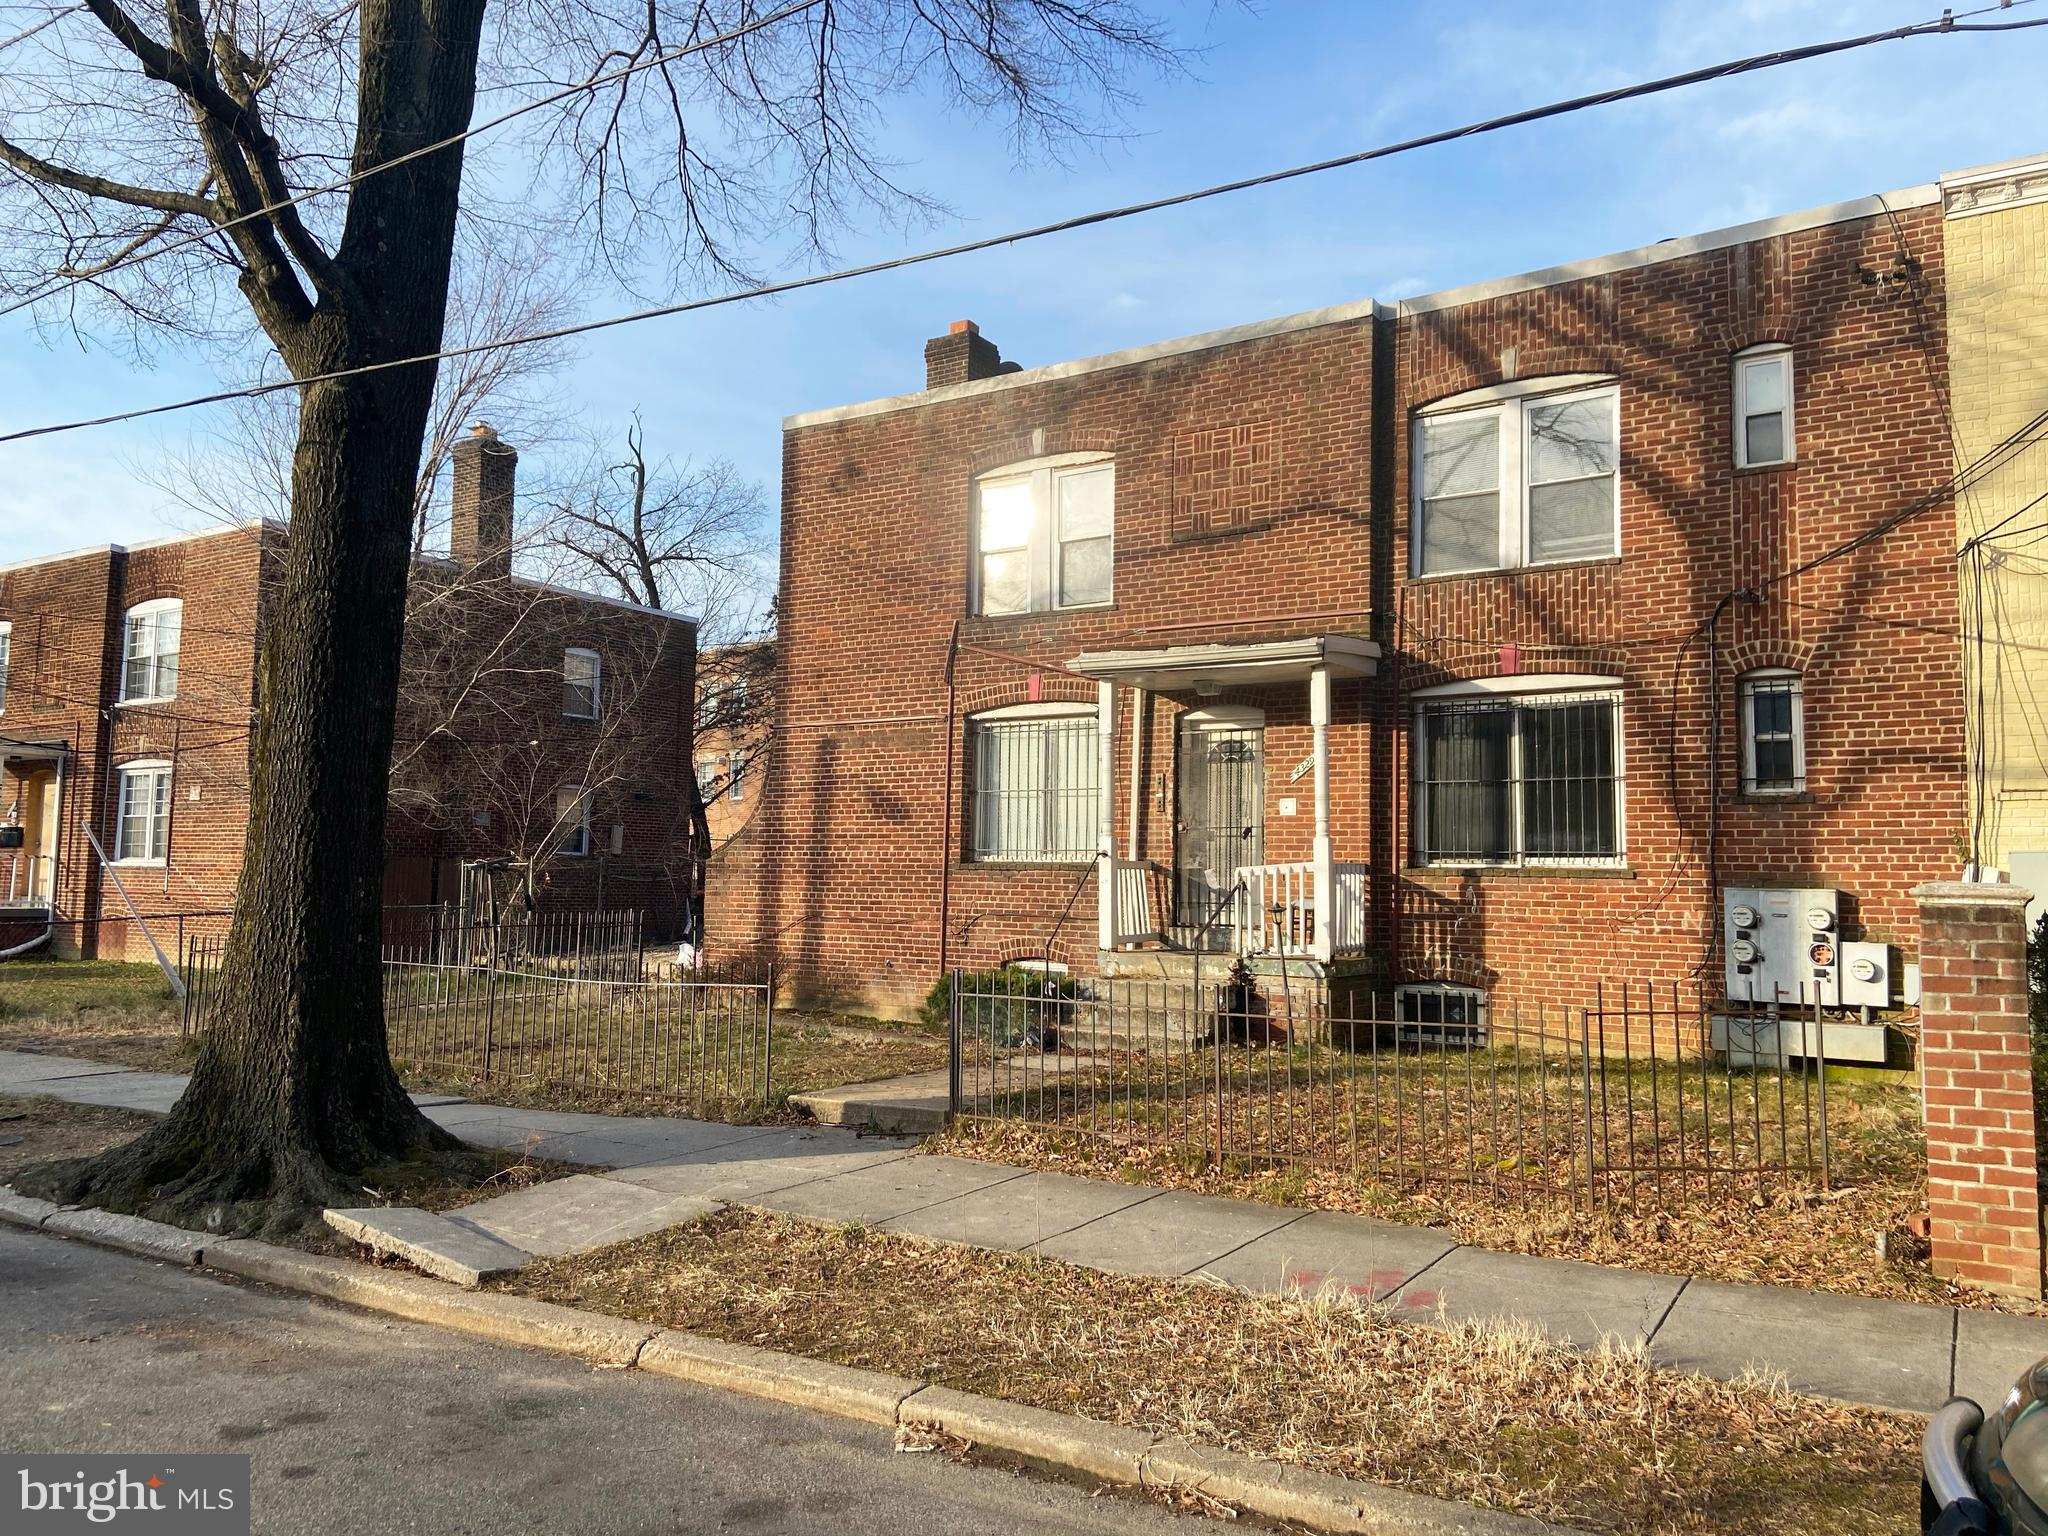 Rare vacant 4-unit building in a burgeoning market. Vacant Asset - The asset will be delivered vacan